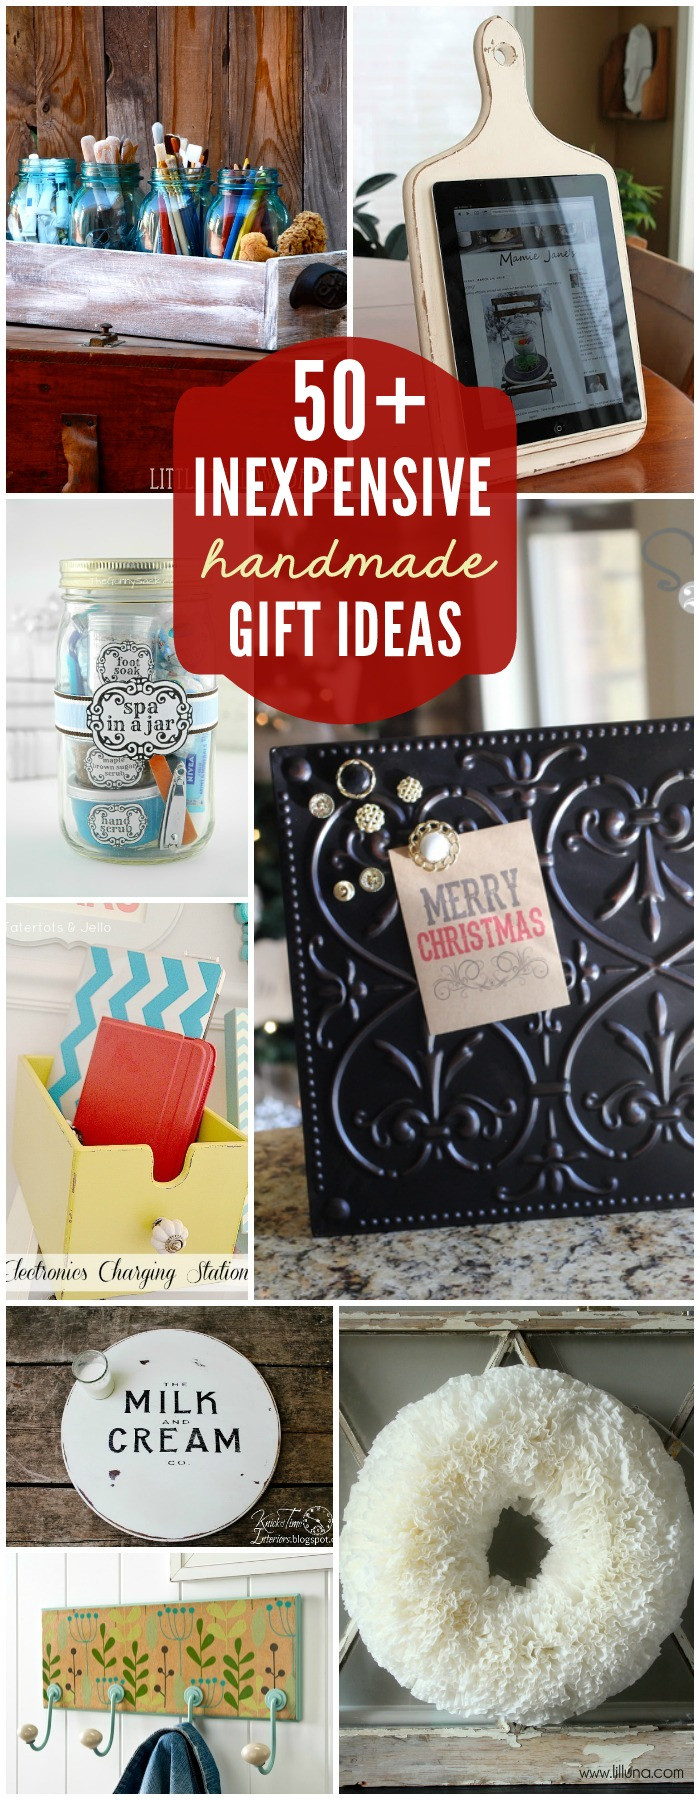 Best ideas about DIY Christmas Ideas . Save or Pin Easy DIY Gift Ideas Now.